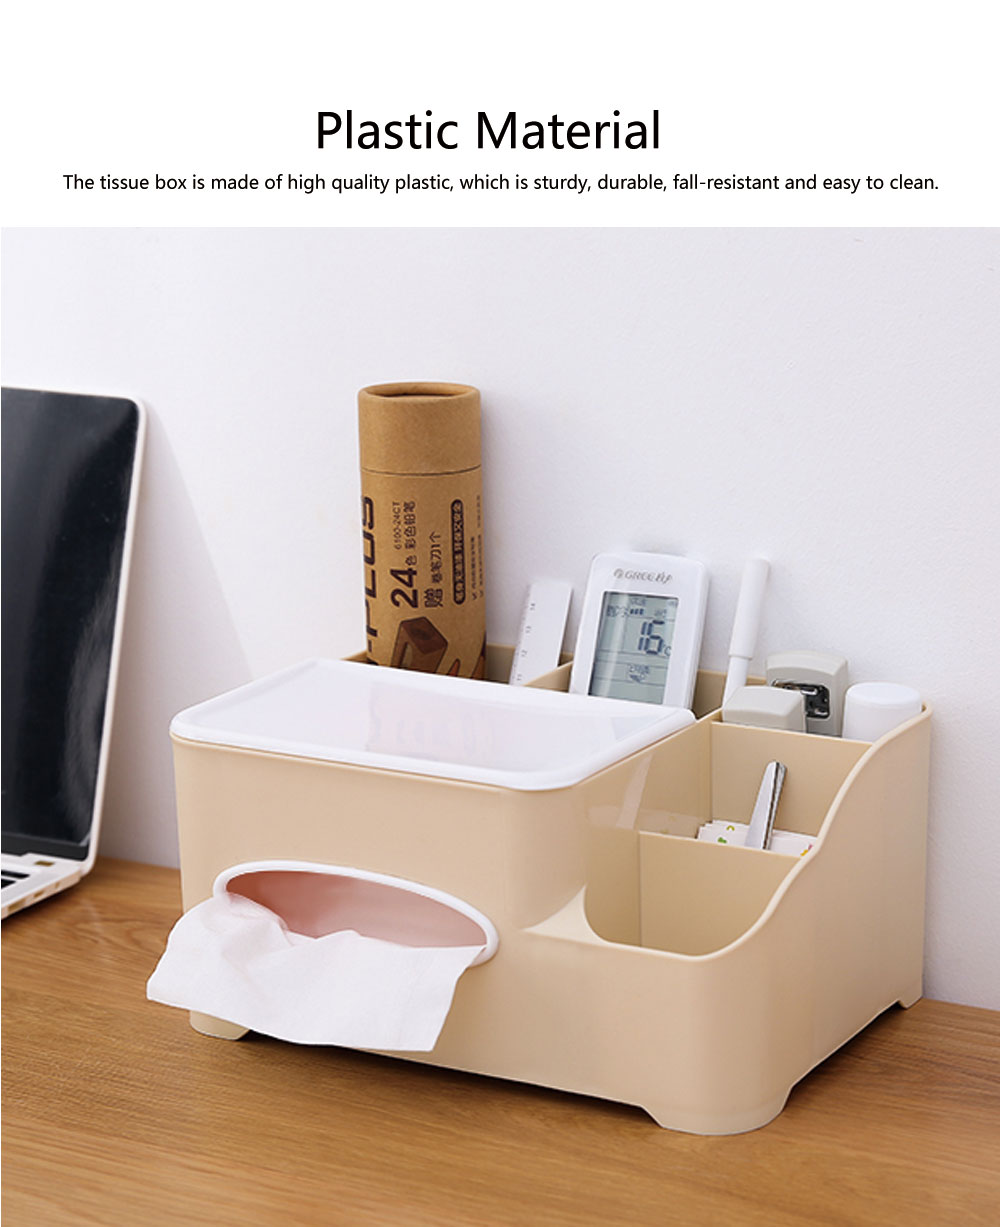 Storage Box Plastic Multifunctional Tissue Box Creativity Sorting Box for Remote Controller Sundries Container 1